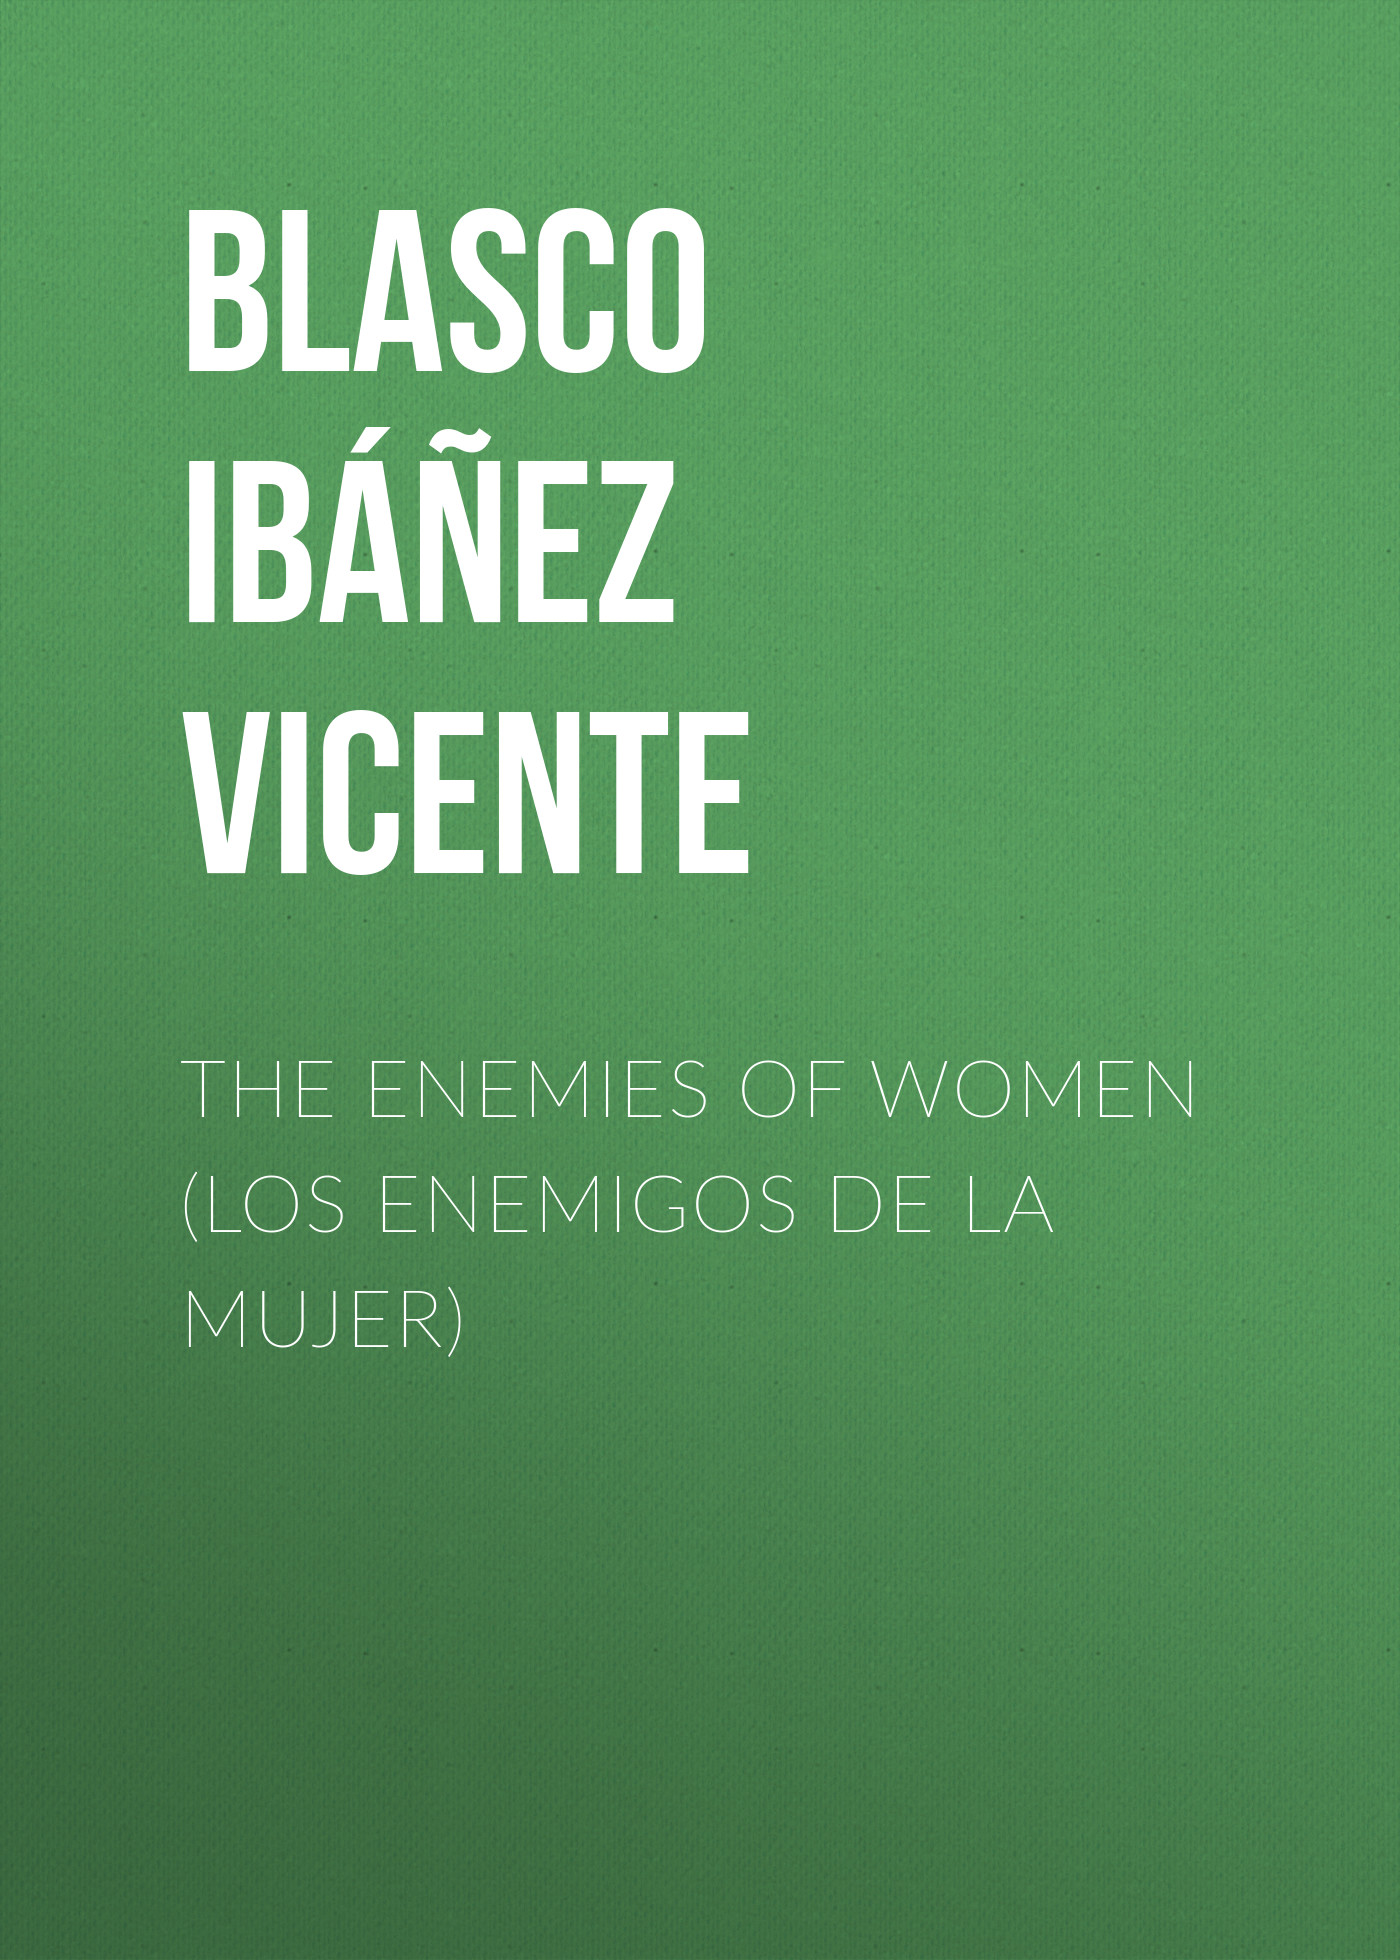 Blasco Ibáñez Vicente The Enemies of Women (Los enemigos de la mujer) kzni genuine leather women messenger bag famous brand woman bag bolsos mujer de marca famosa 2017 cuero genuino l032303